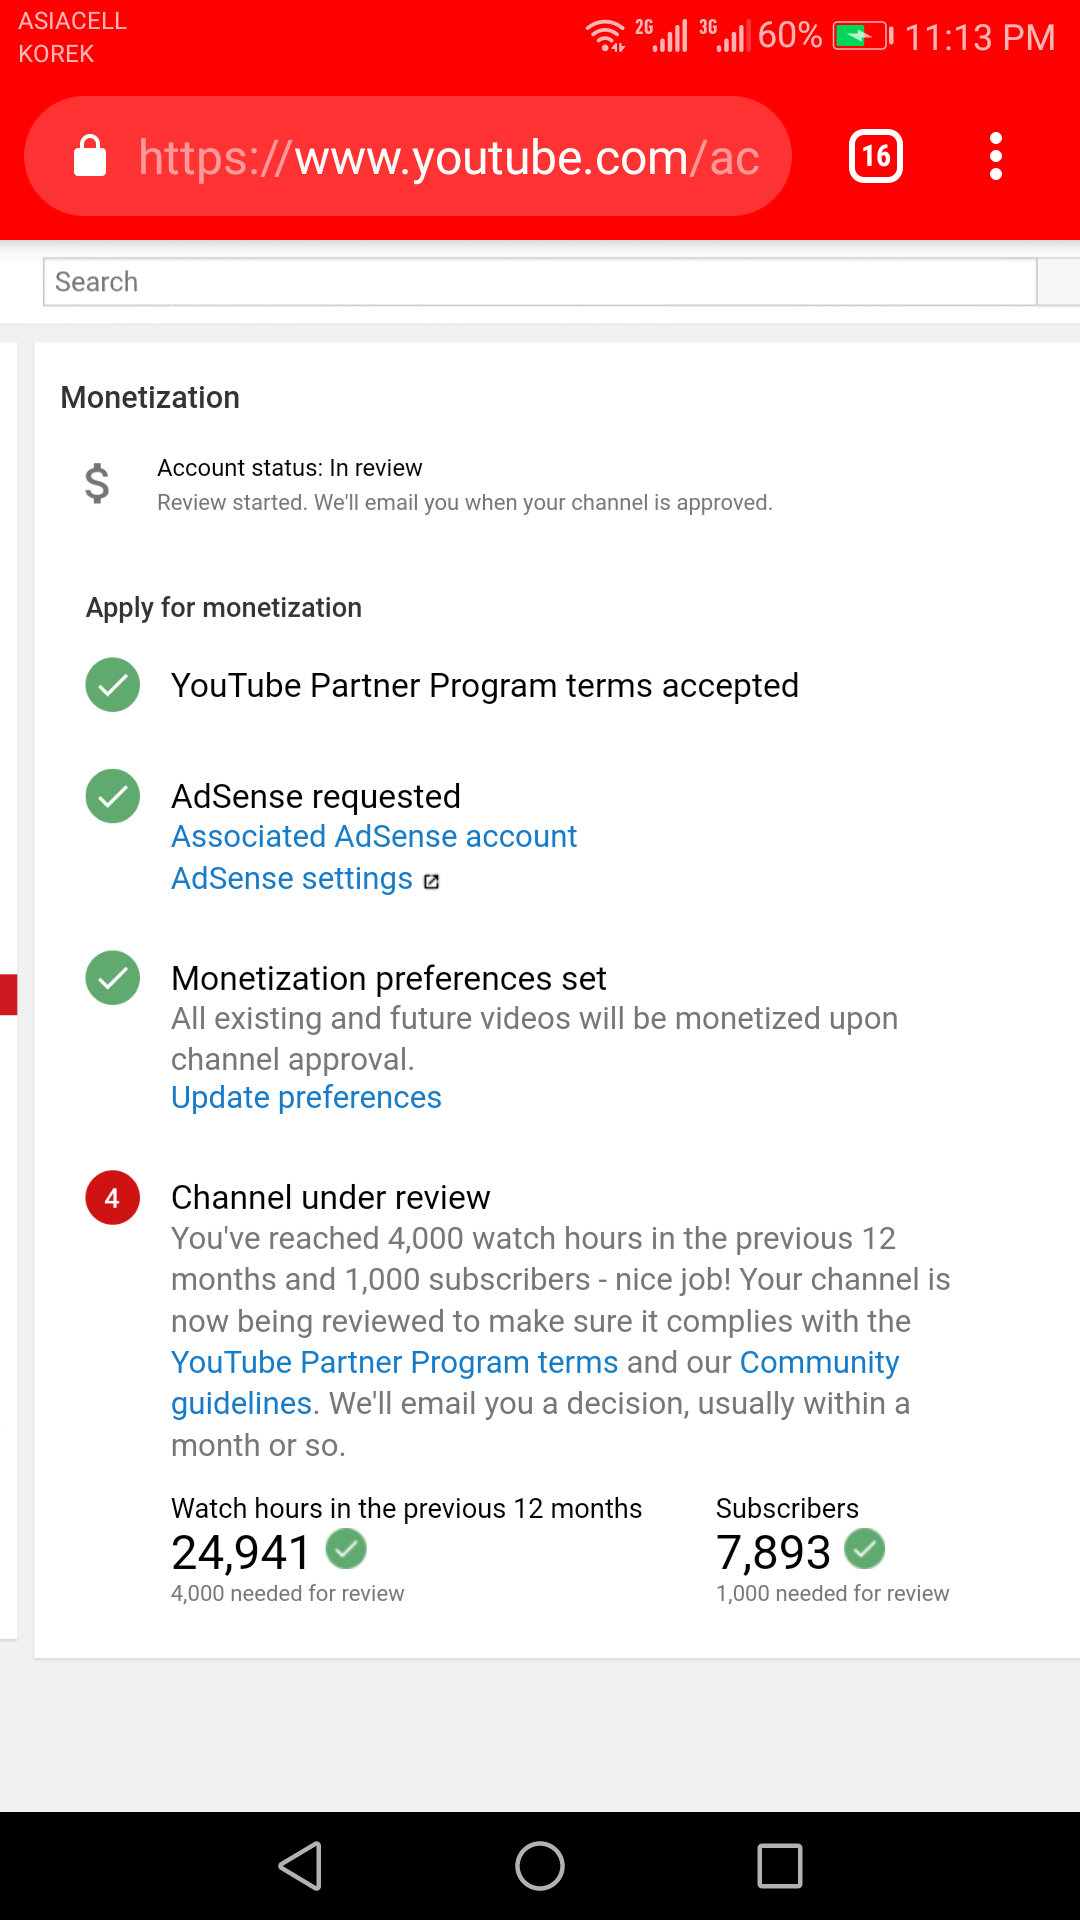 Youtube monetization under review after 1 months - YouTube Help